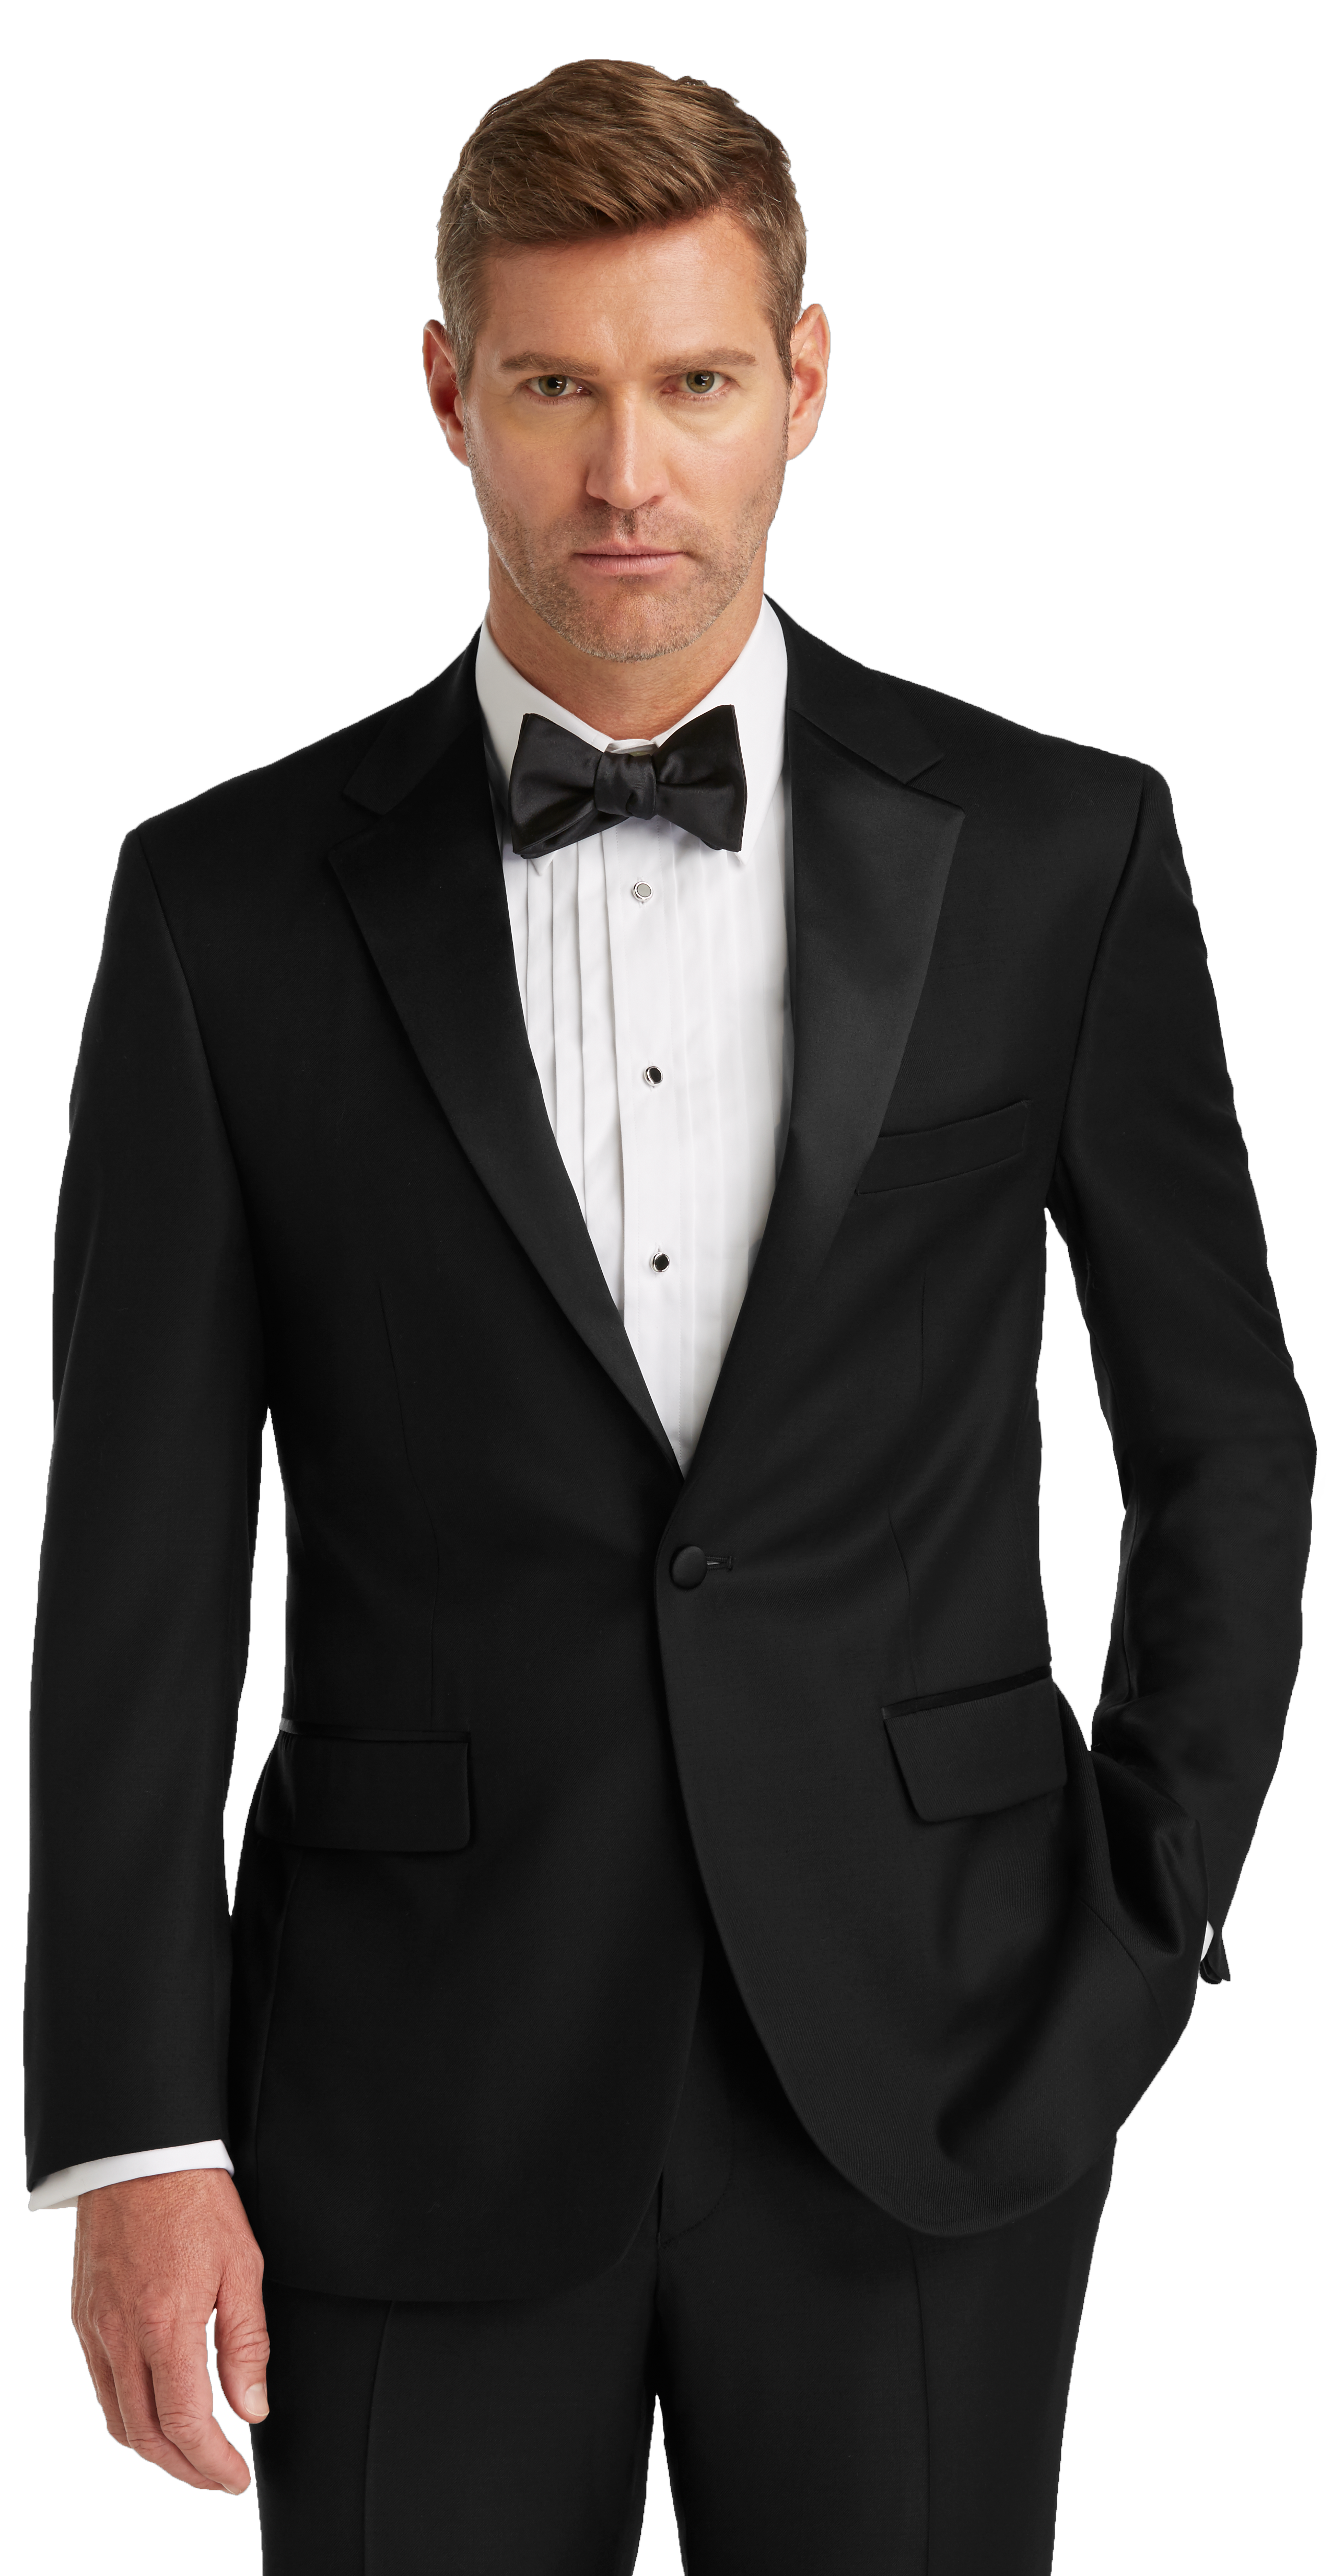 new high select for clearance biggest discount 1905 Collection Tailored Fit Tuxedo Separate Jacket